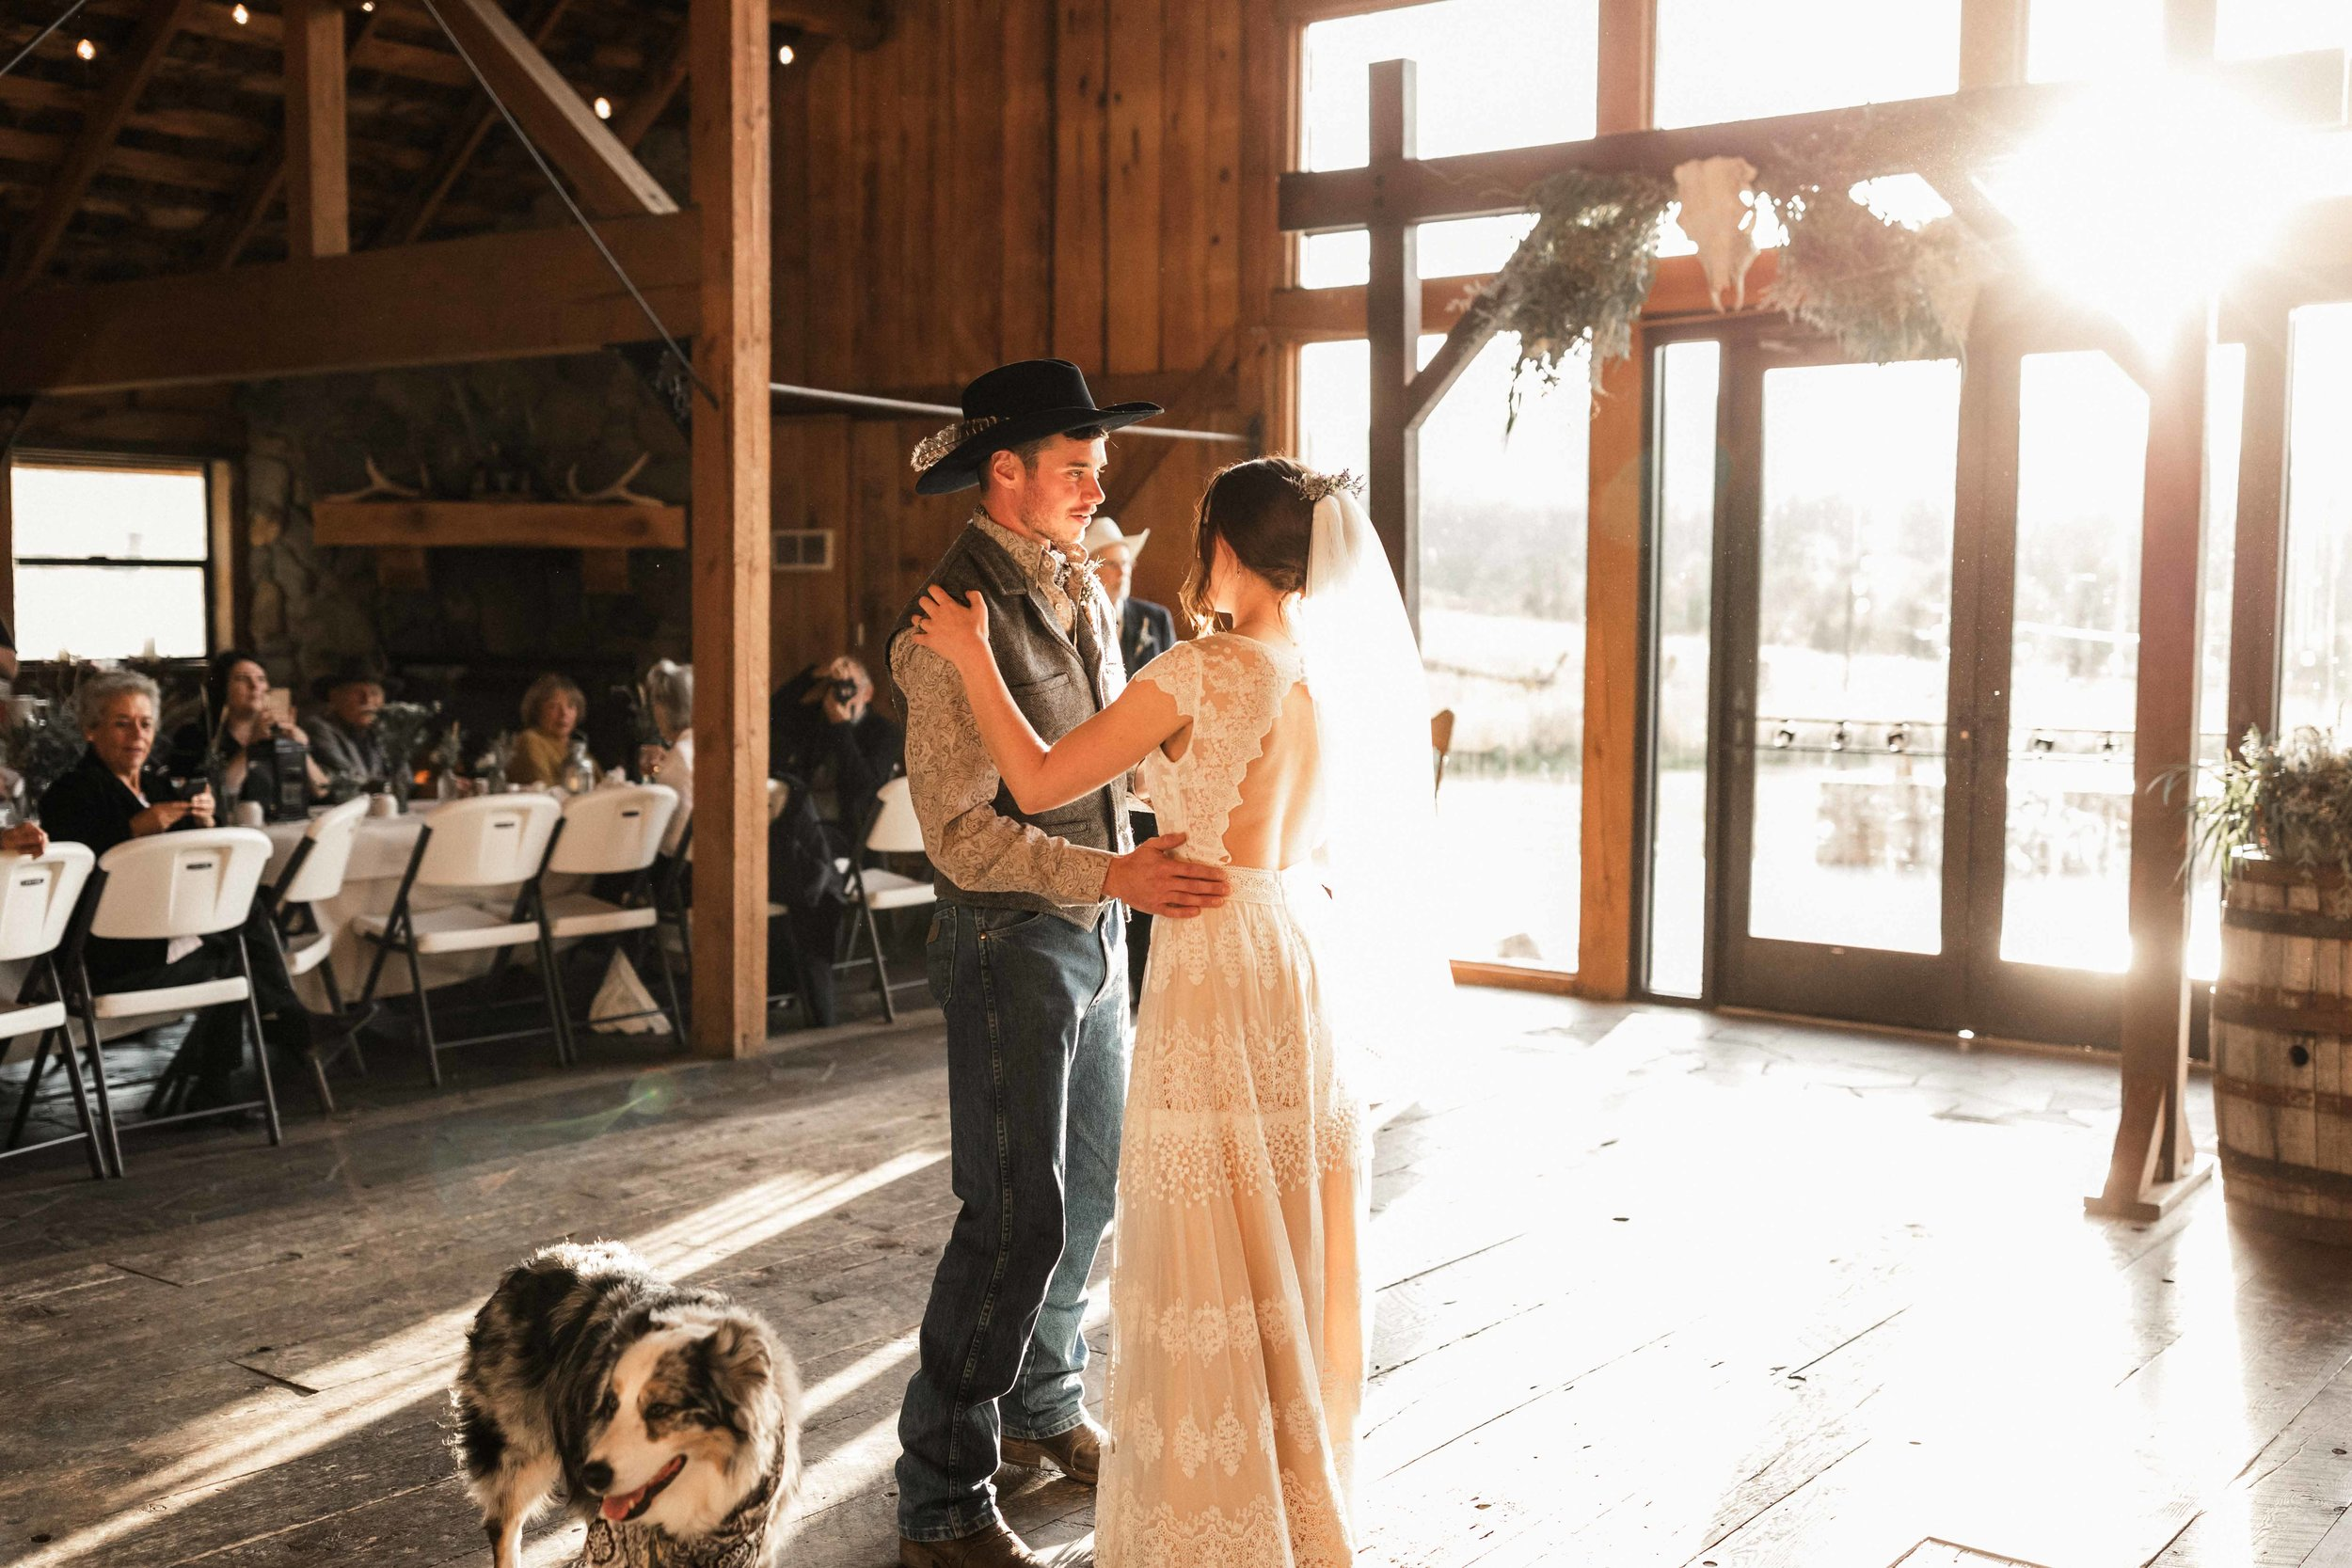 the-cattle-barn-wedding-71.jpg